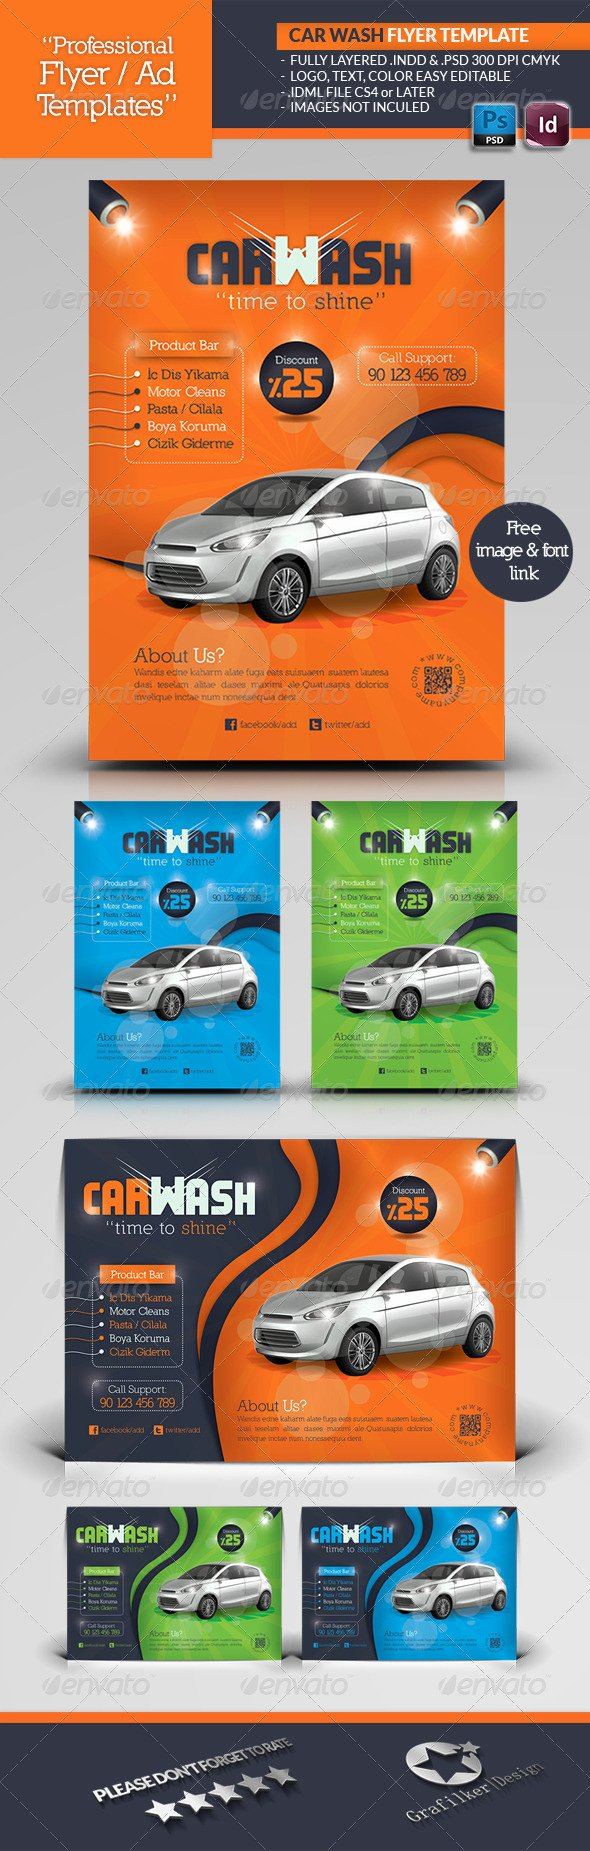 Car Wash Flyer Template Lovely Car Wash Flyer Template